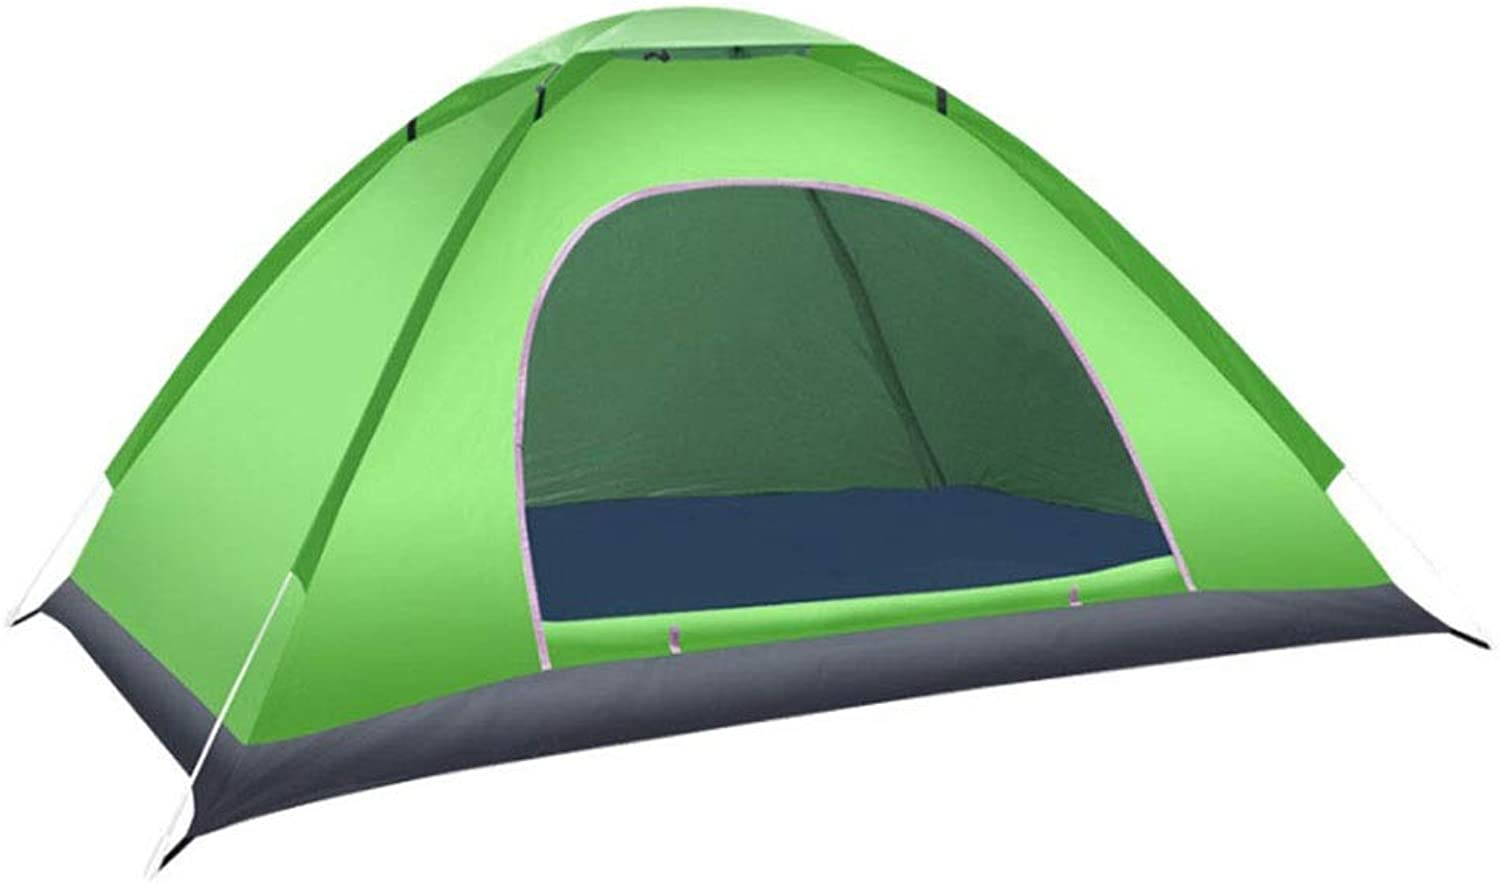 Outdoor Camping Tent 3 4 Camping Tent Festival Essential Dome Tent, 100% Waterproof with Sewn in Groundsheet